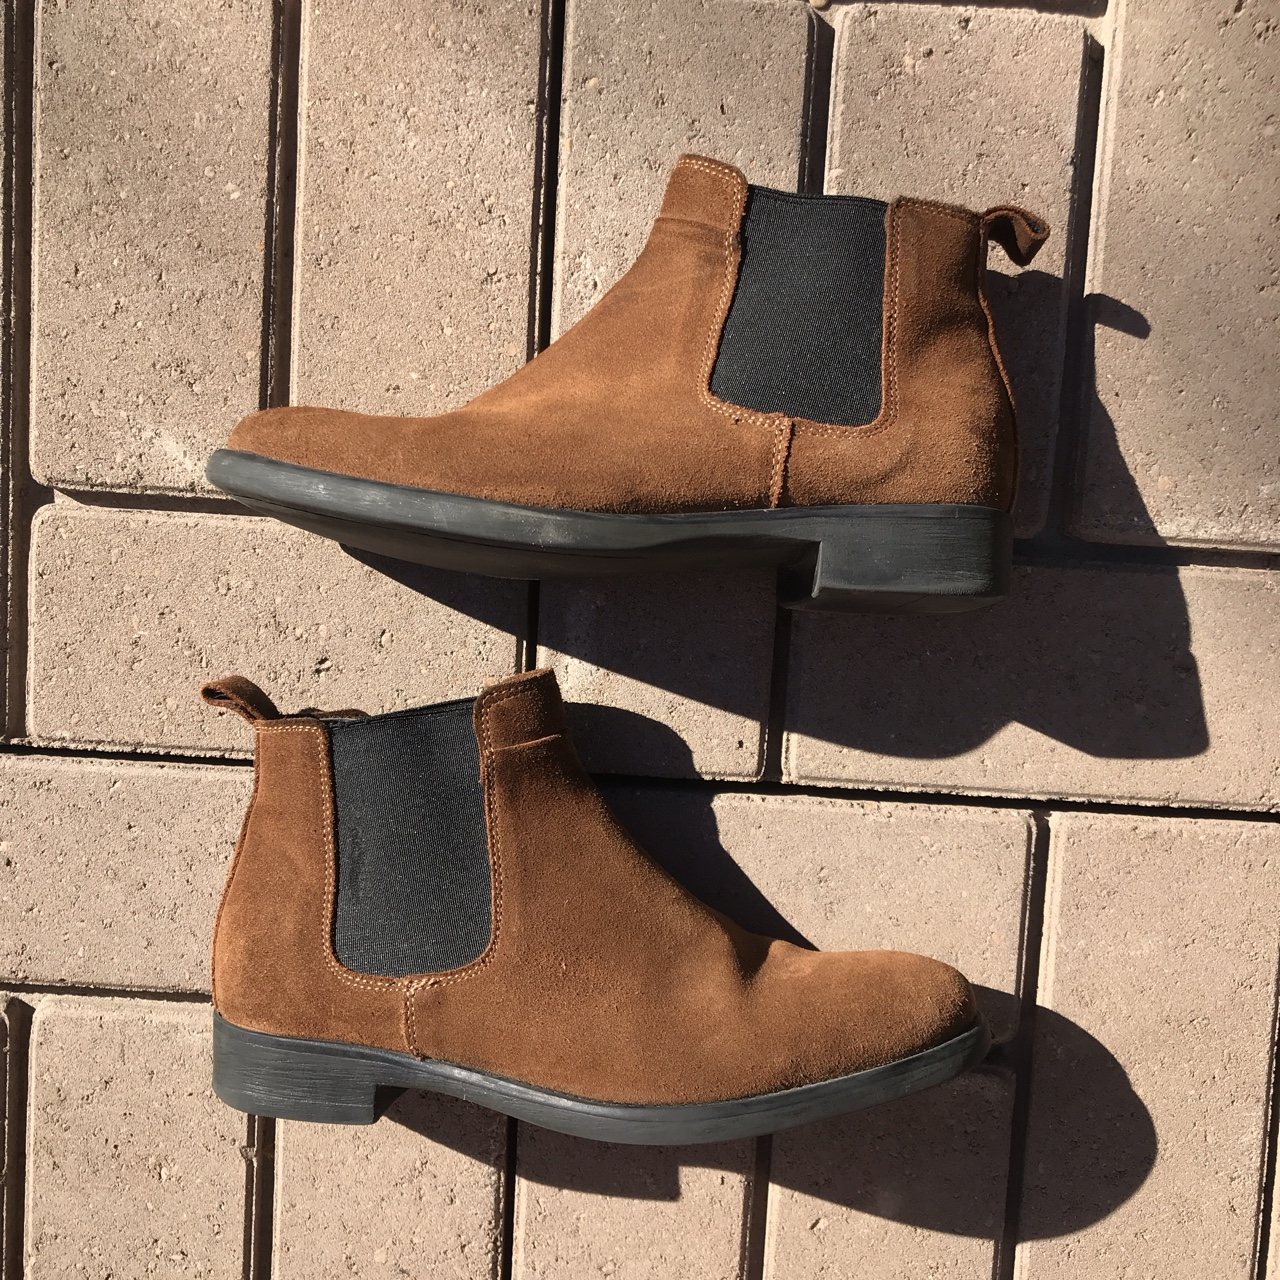 54a3a8e95887c dead8ray. Houston, United States. Zara Man Men's brown Suede Chelsea boots  ...